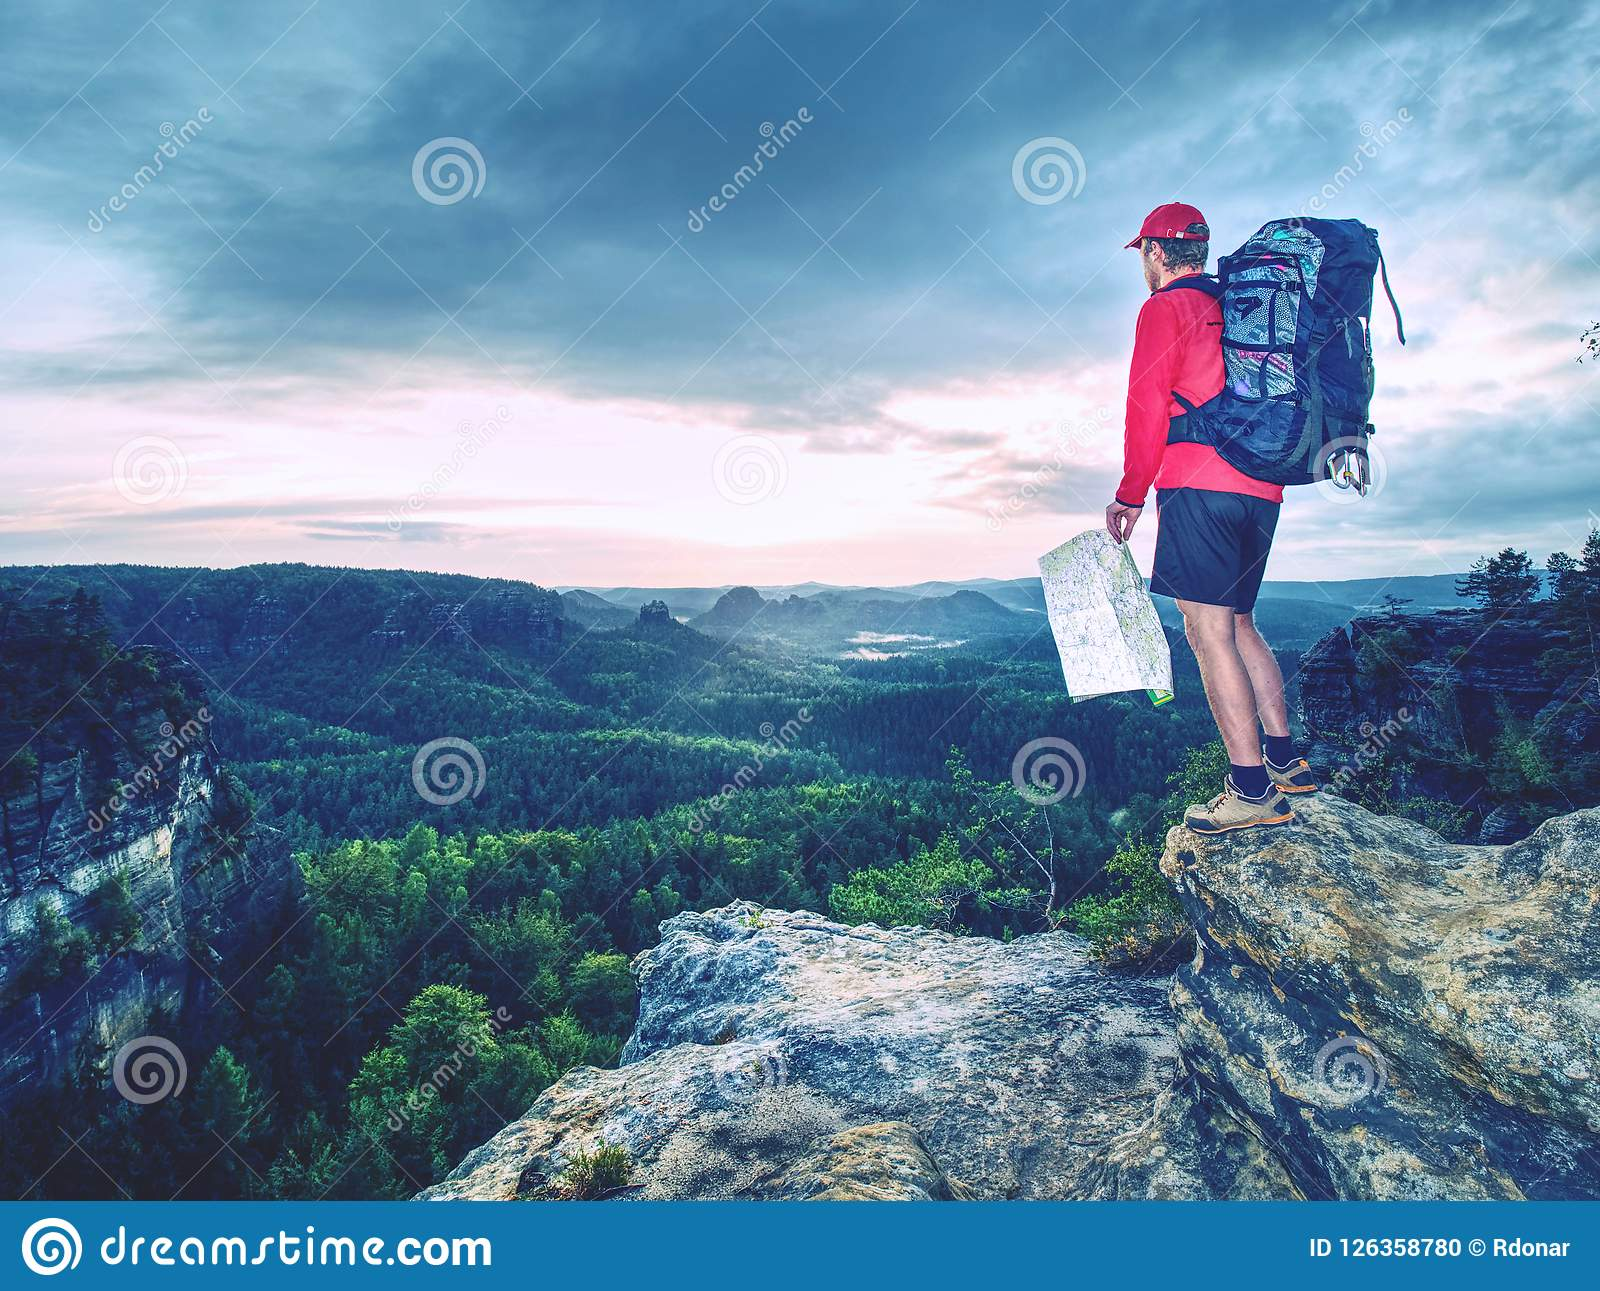 f57fedc10e1d Tall tourist with big backpack looking in paper map. Wild hilly nature  park. Hiker looking for new locations and landmarks to visit in map in his  hands